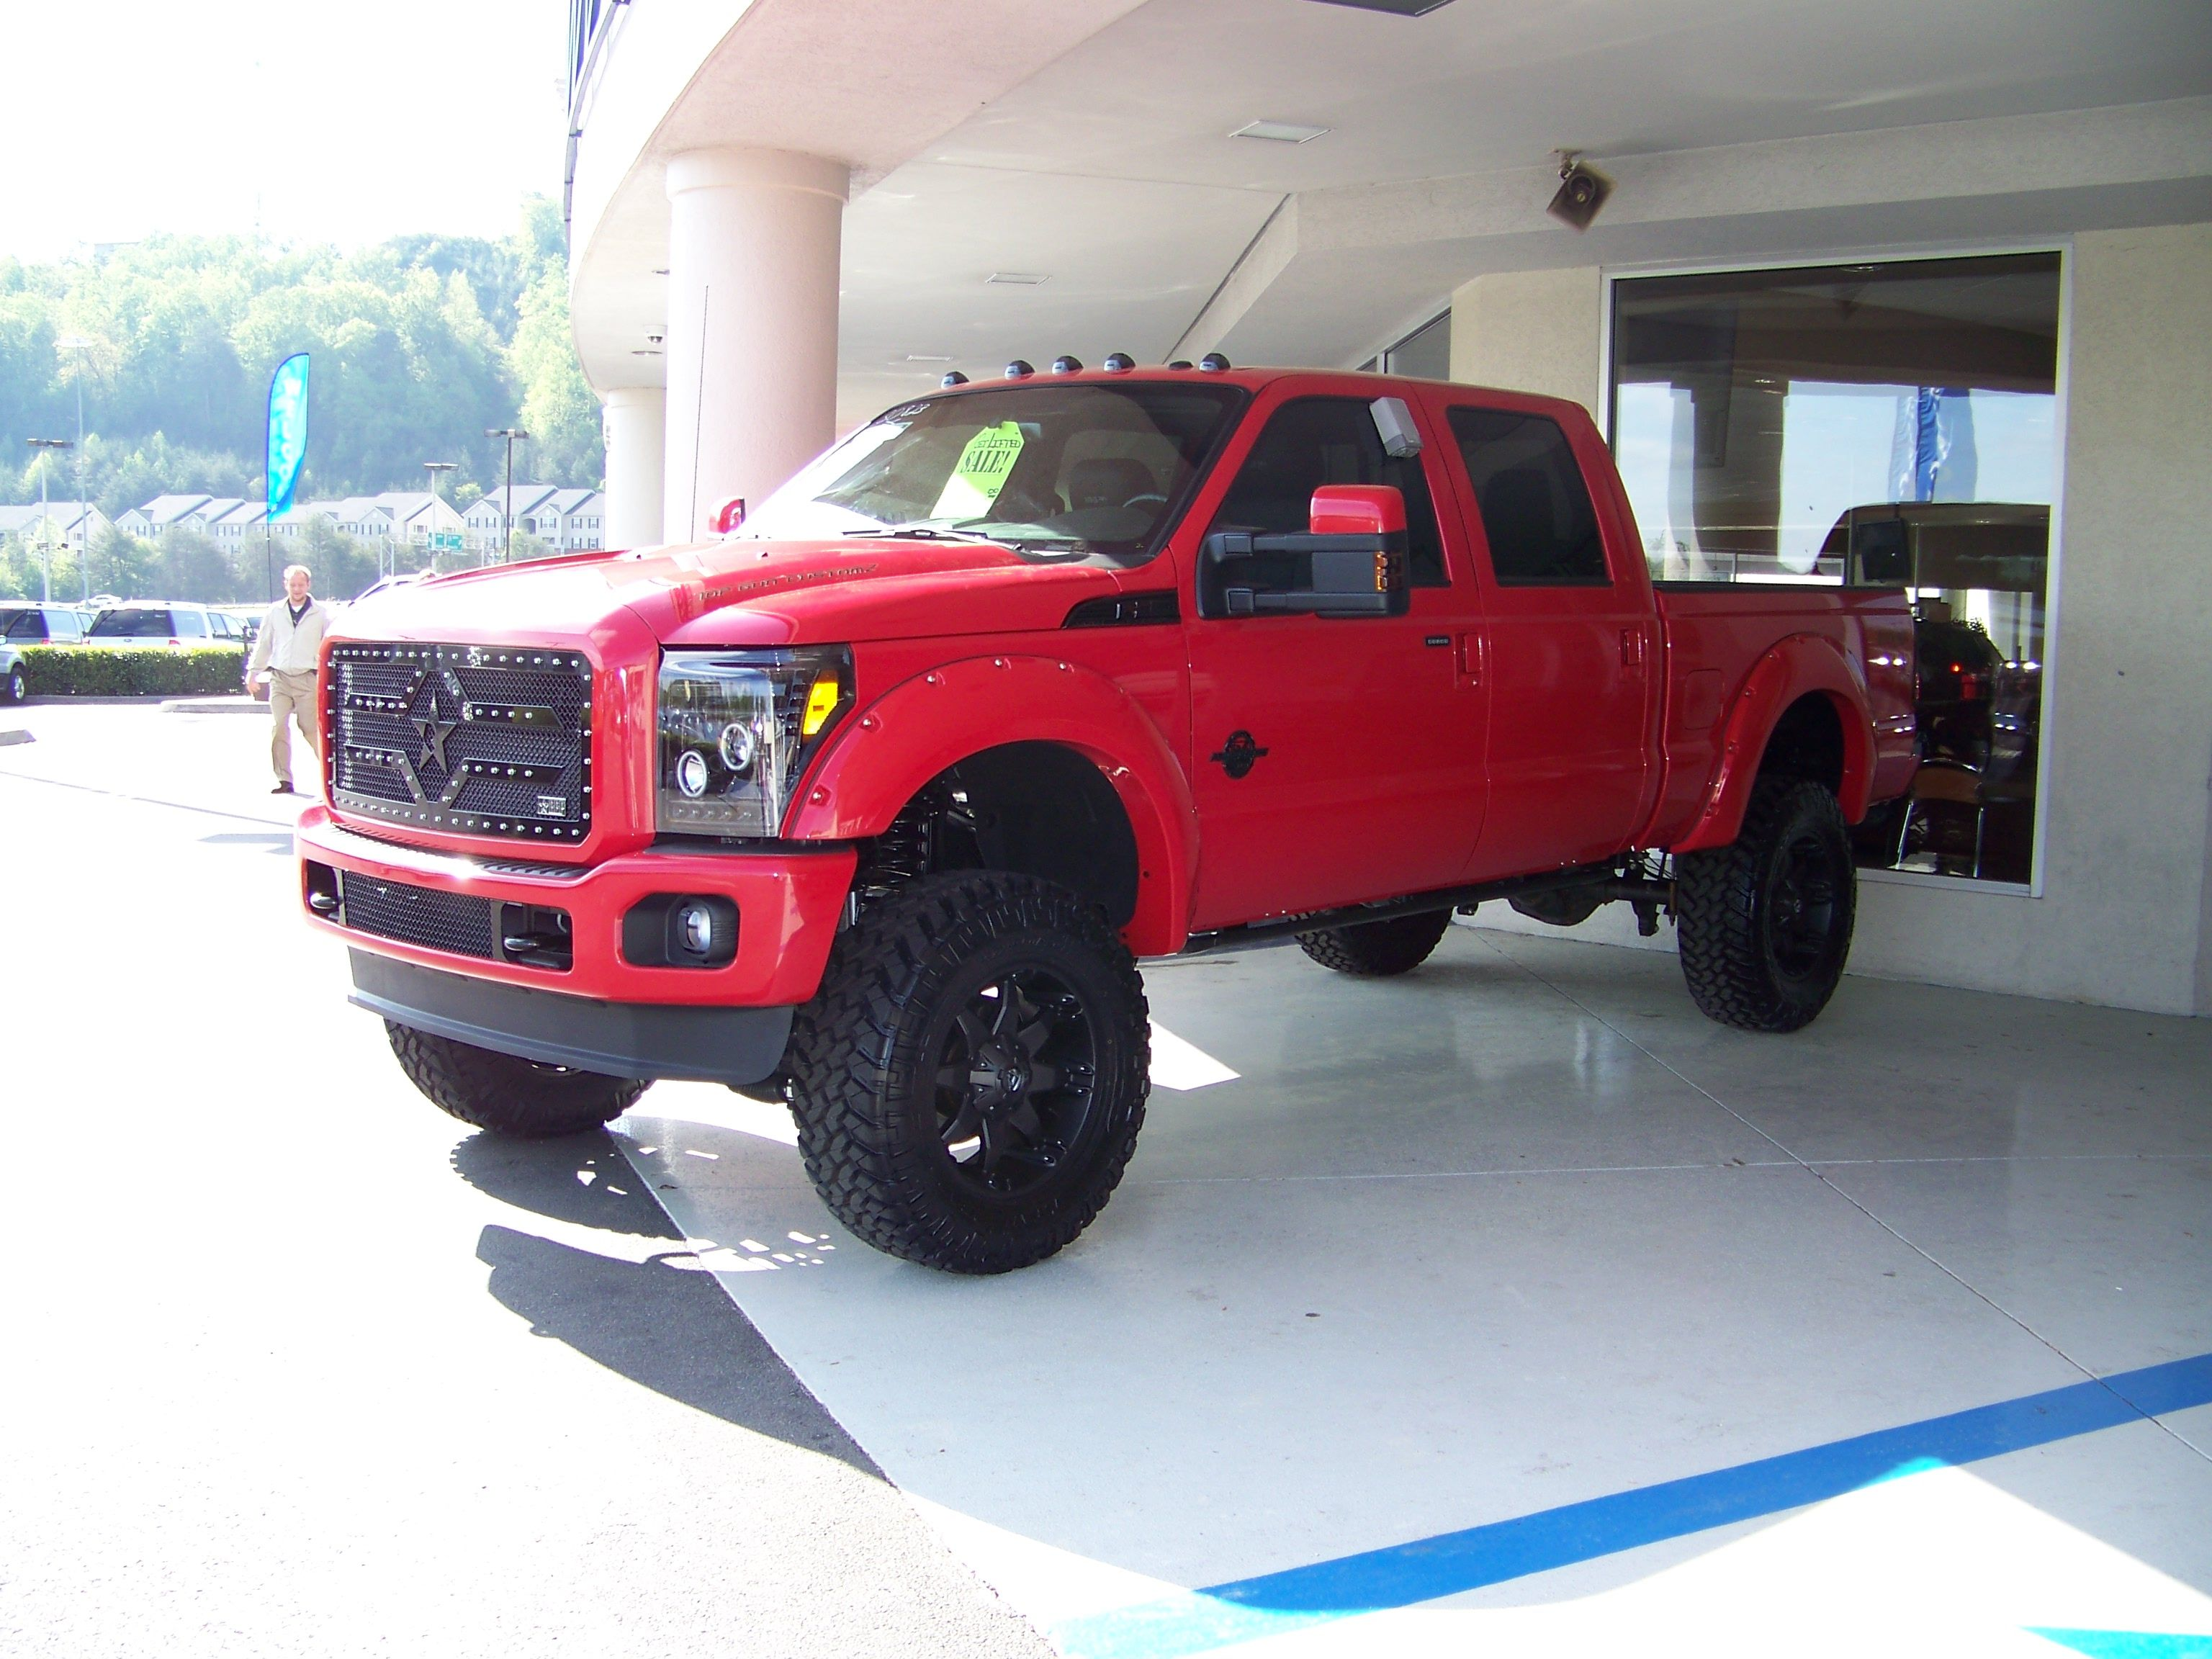 New 2013 ford f 250 modified by top gun customz i want